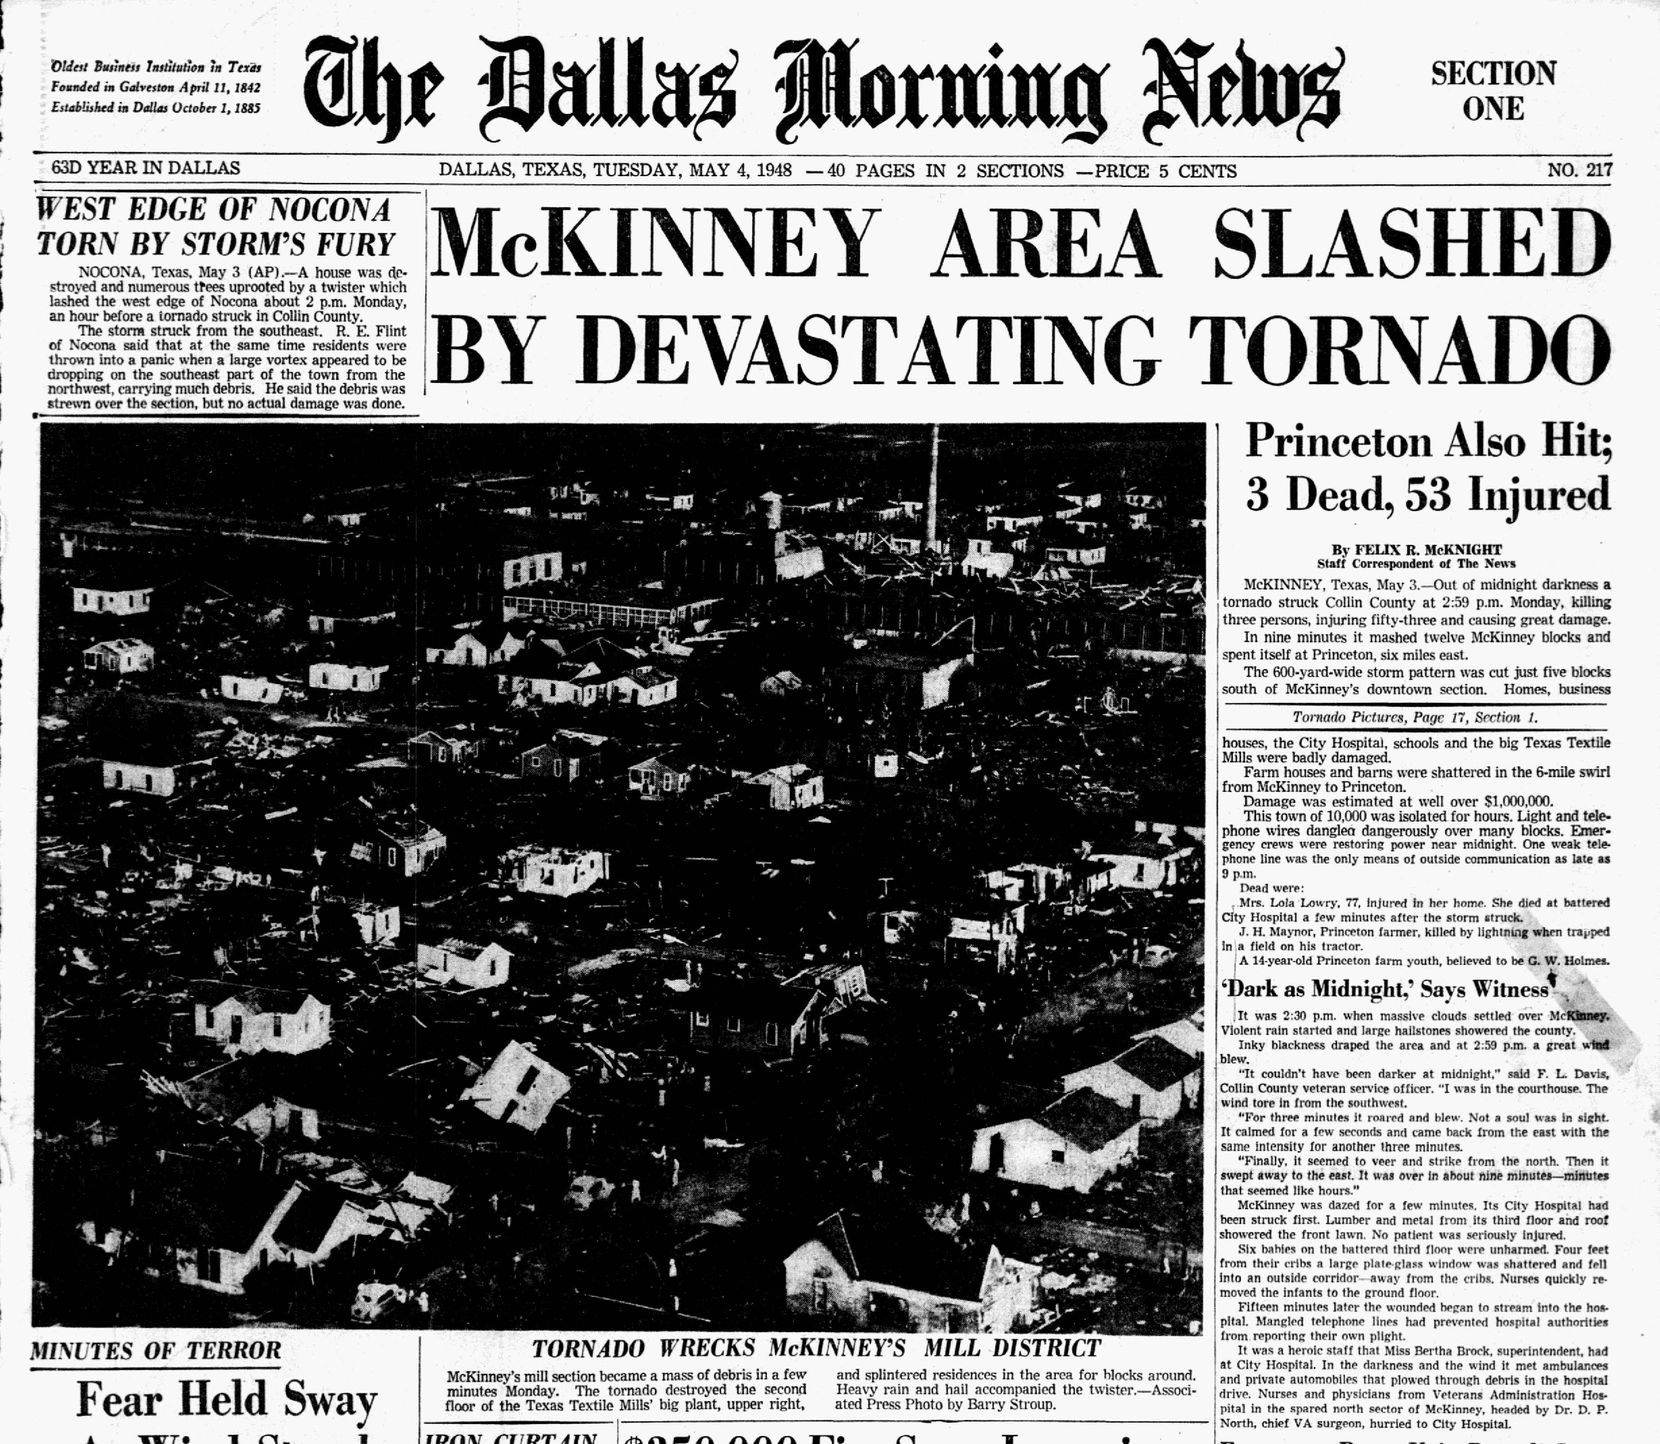 Dallas Morning News front page from May 4, 1948.